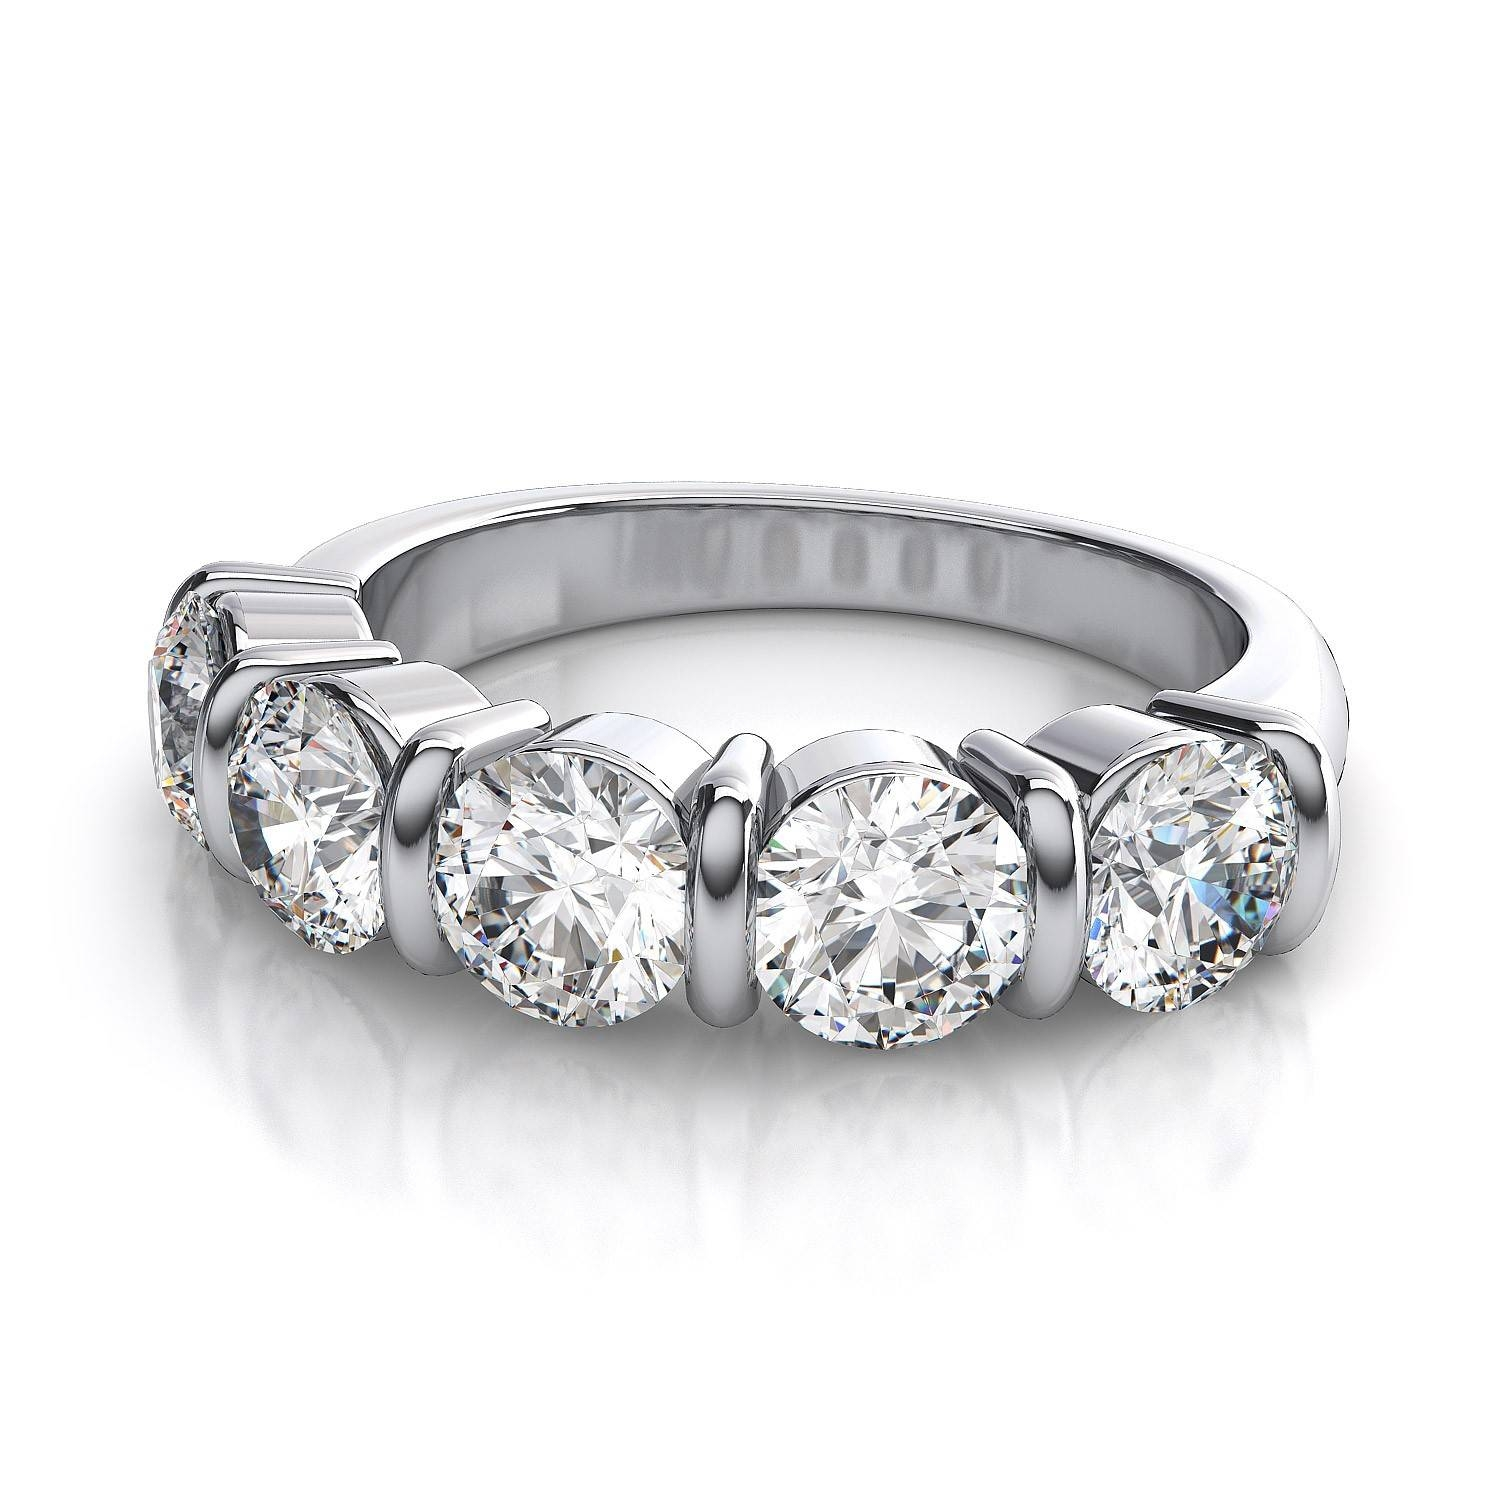 Anniversary Diamond Rings – Show Your Love Intended For Best And Newest Diamonds Wedding Anniversary Rings (View 4 of 25)